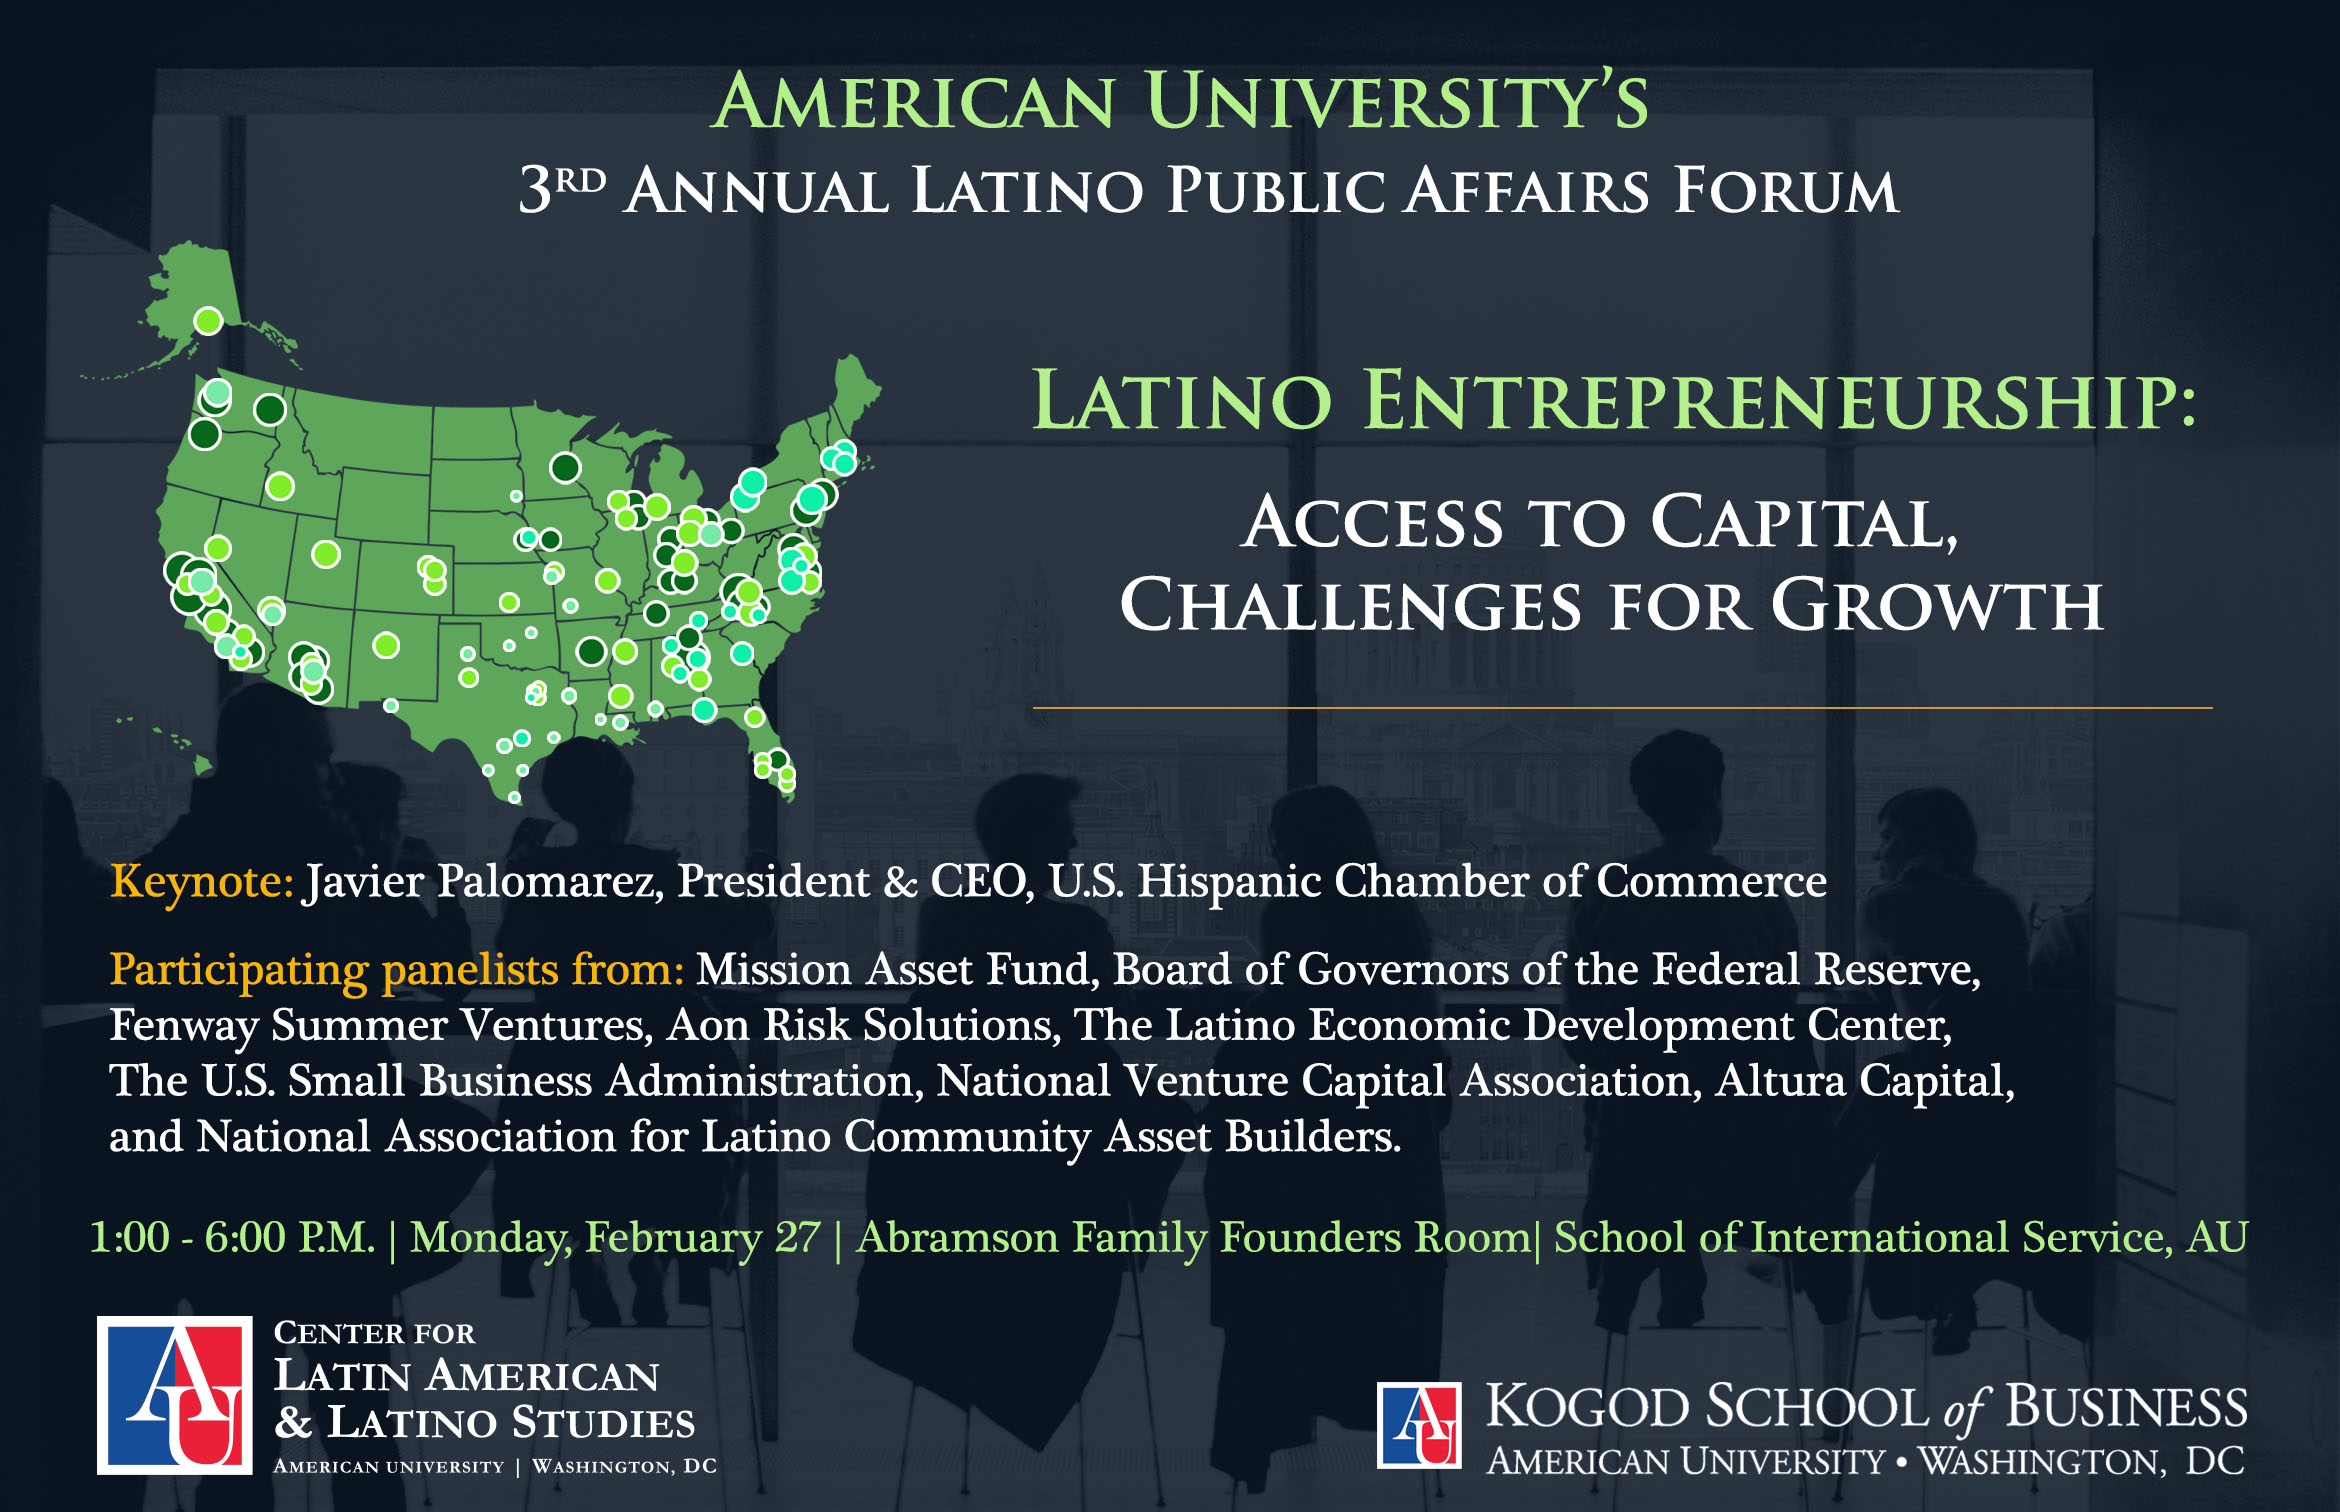 Annual Latino Public Affairs Forum | American University